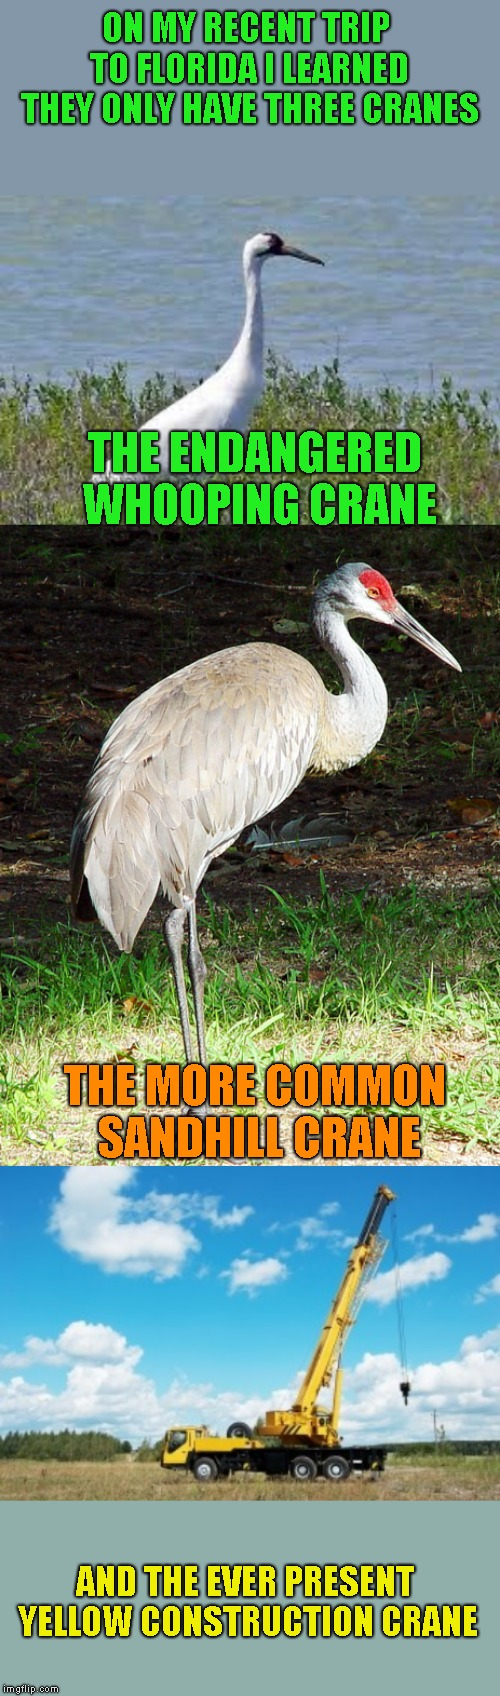 Not to be confused with Herons, Egrets and bulldozers | THE ENDANGERED WHOOPING CRANE AND THE EVER PRESENT YELLOW CONSTRUCTION CRANE THE MORE COMMON SANDHILL CRANE ON MY RECENT TRIP TO FLORIDA I L | image tagged in birds,stupid humor | made w/ Imgflip meme maker